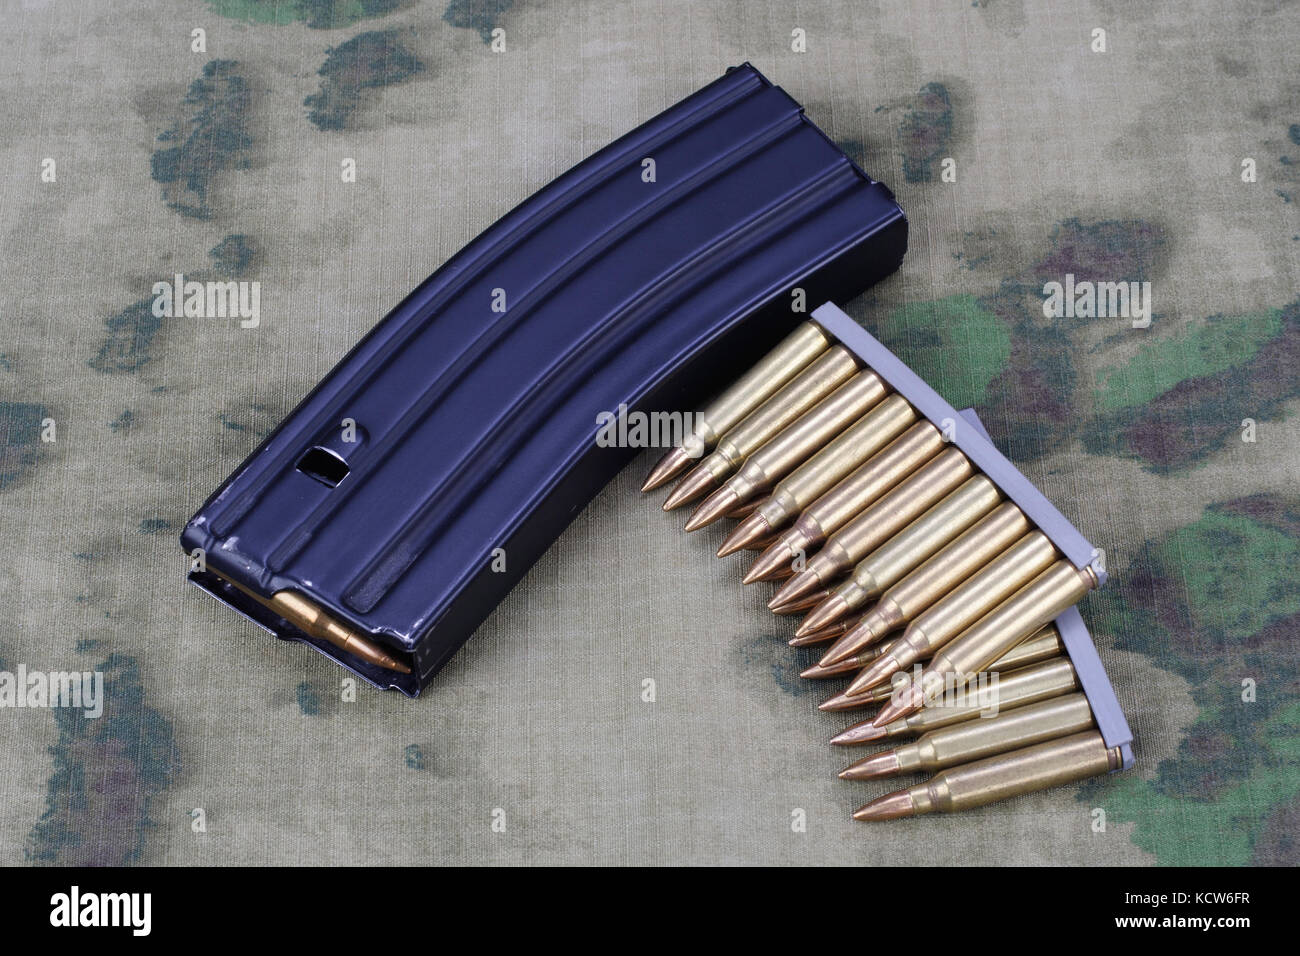 Ammunition with magazine on camoflage background - Stock Image